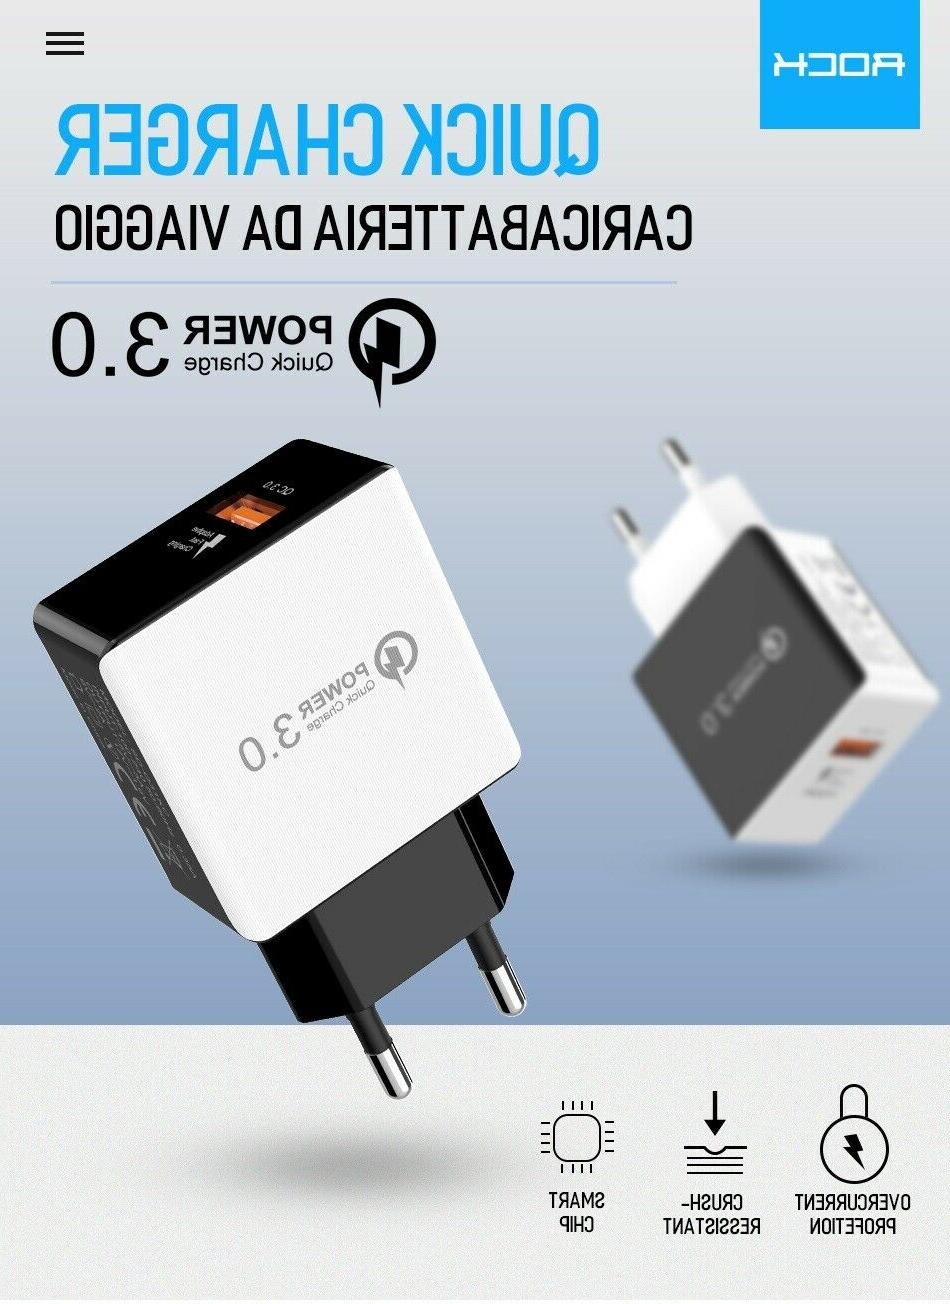 USB Quick Charger or